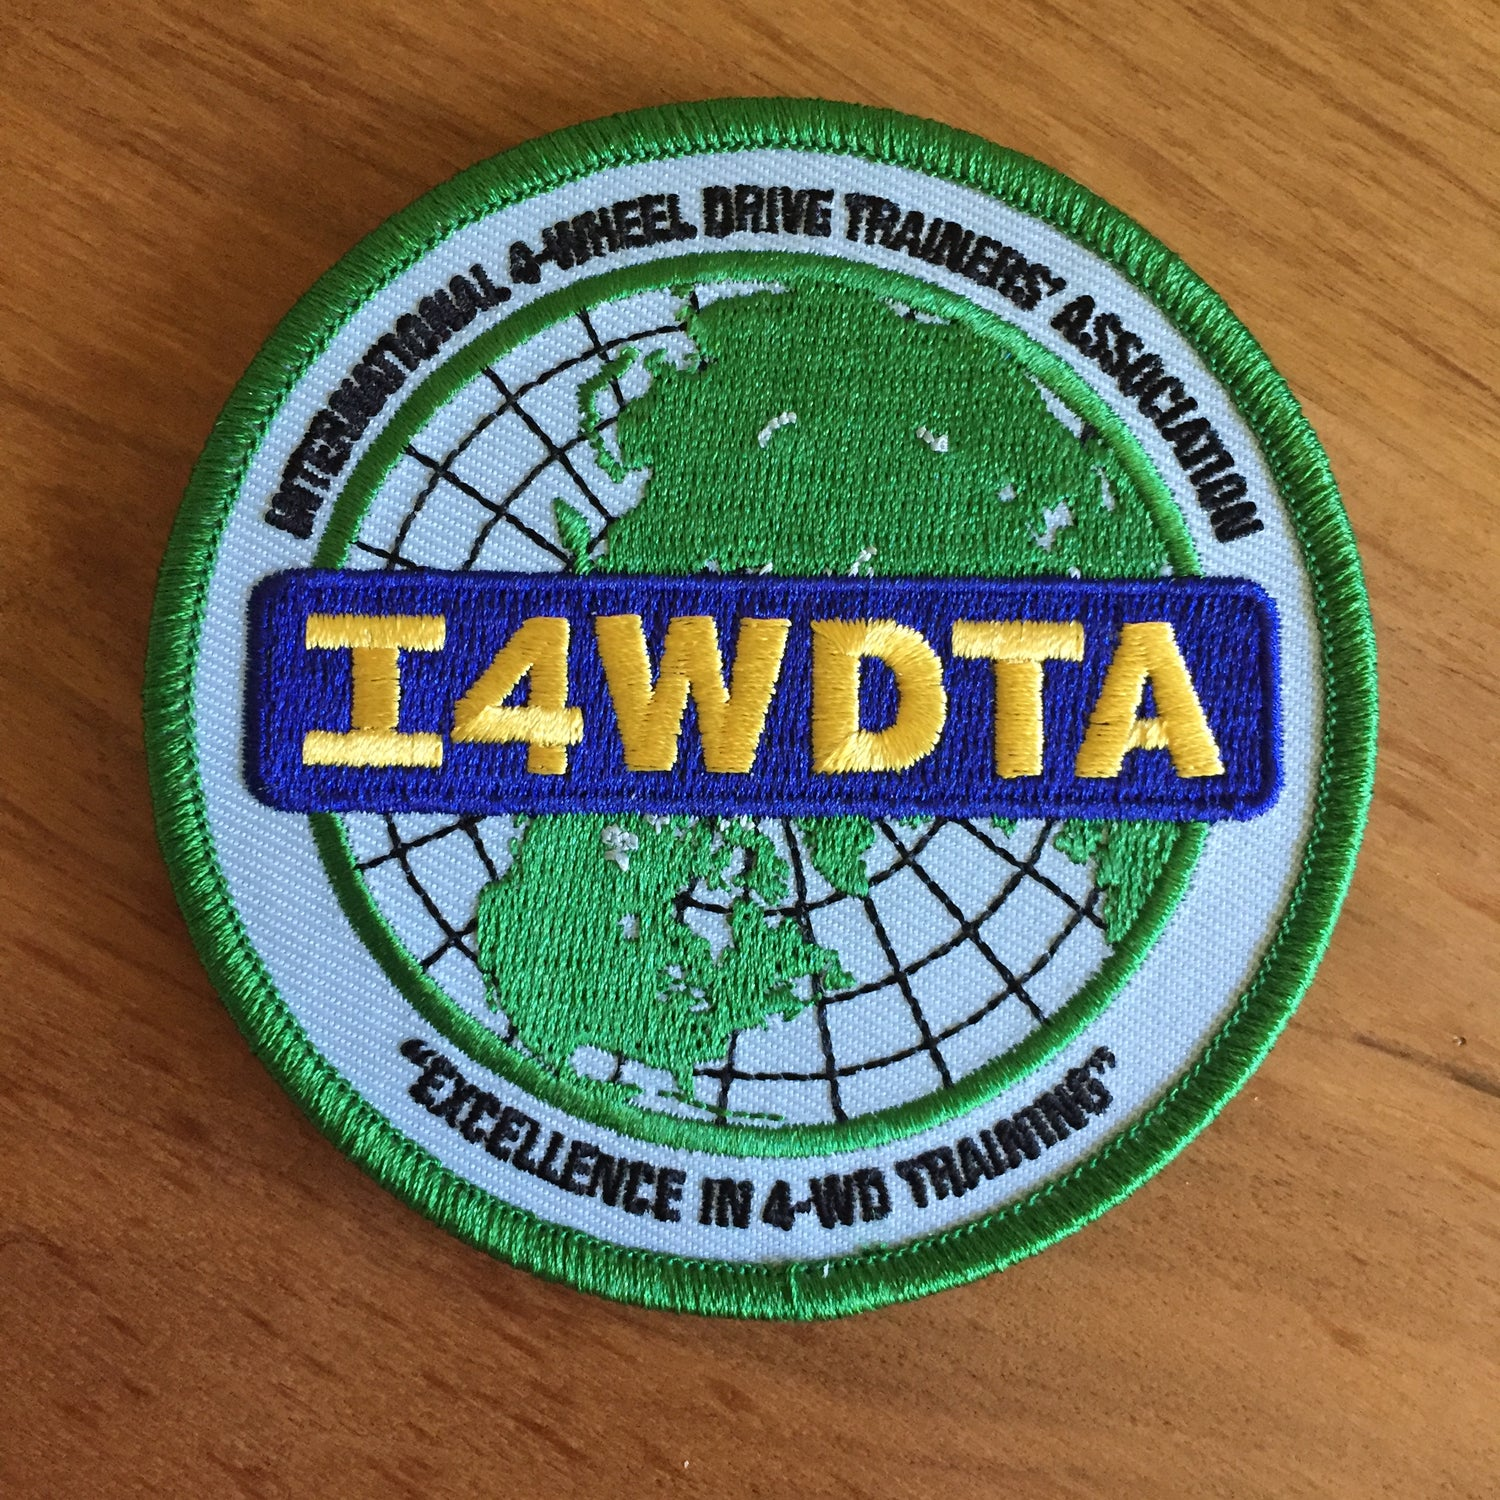 Image of I4WDTA Embroidered Patch